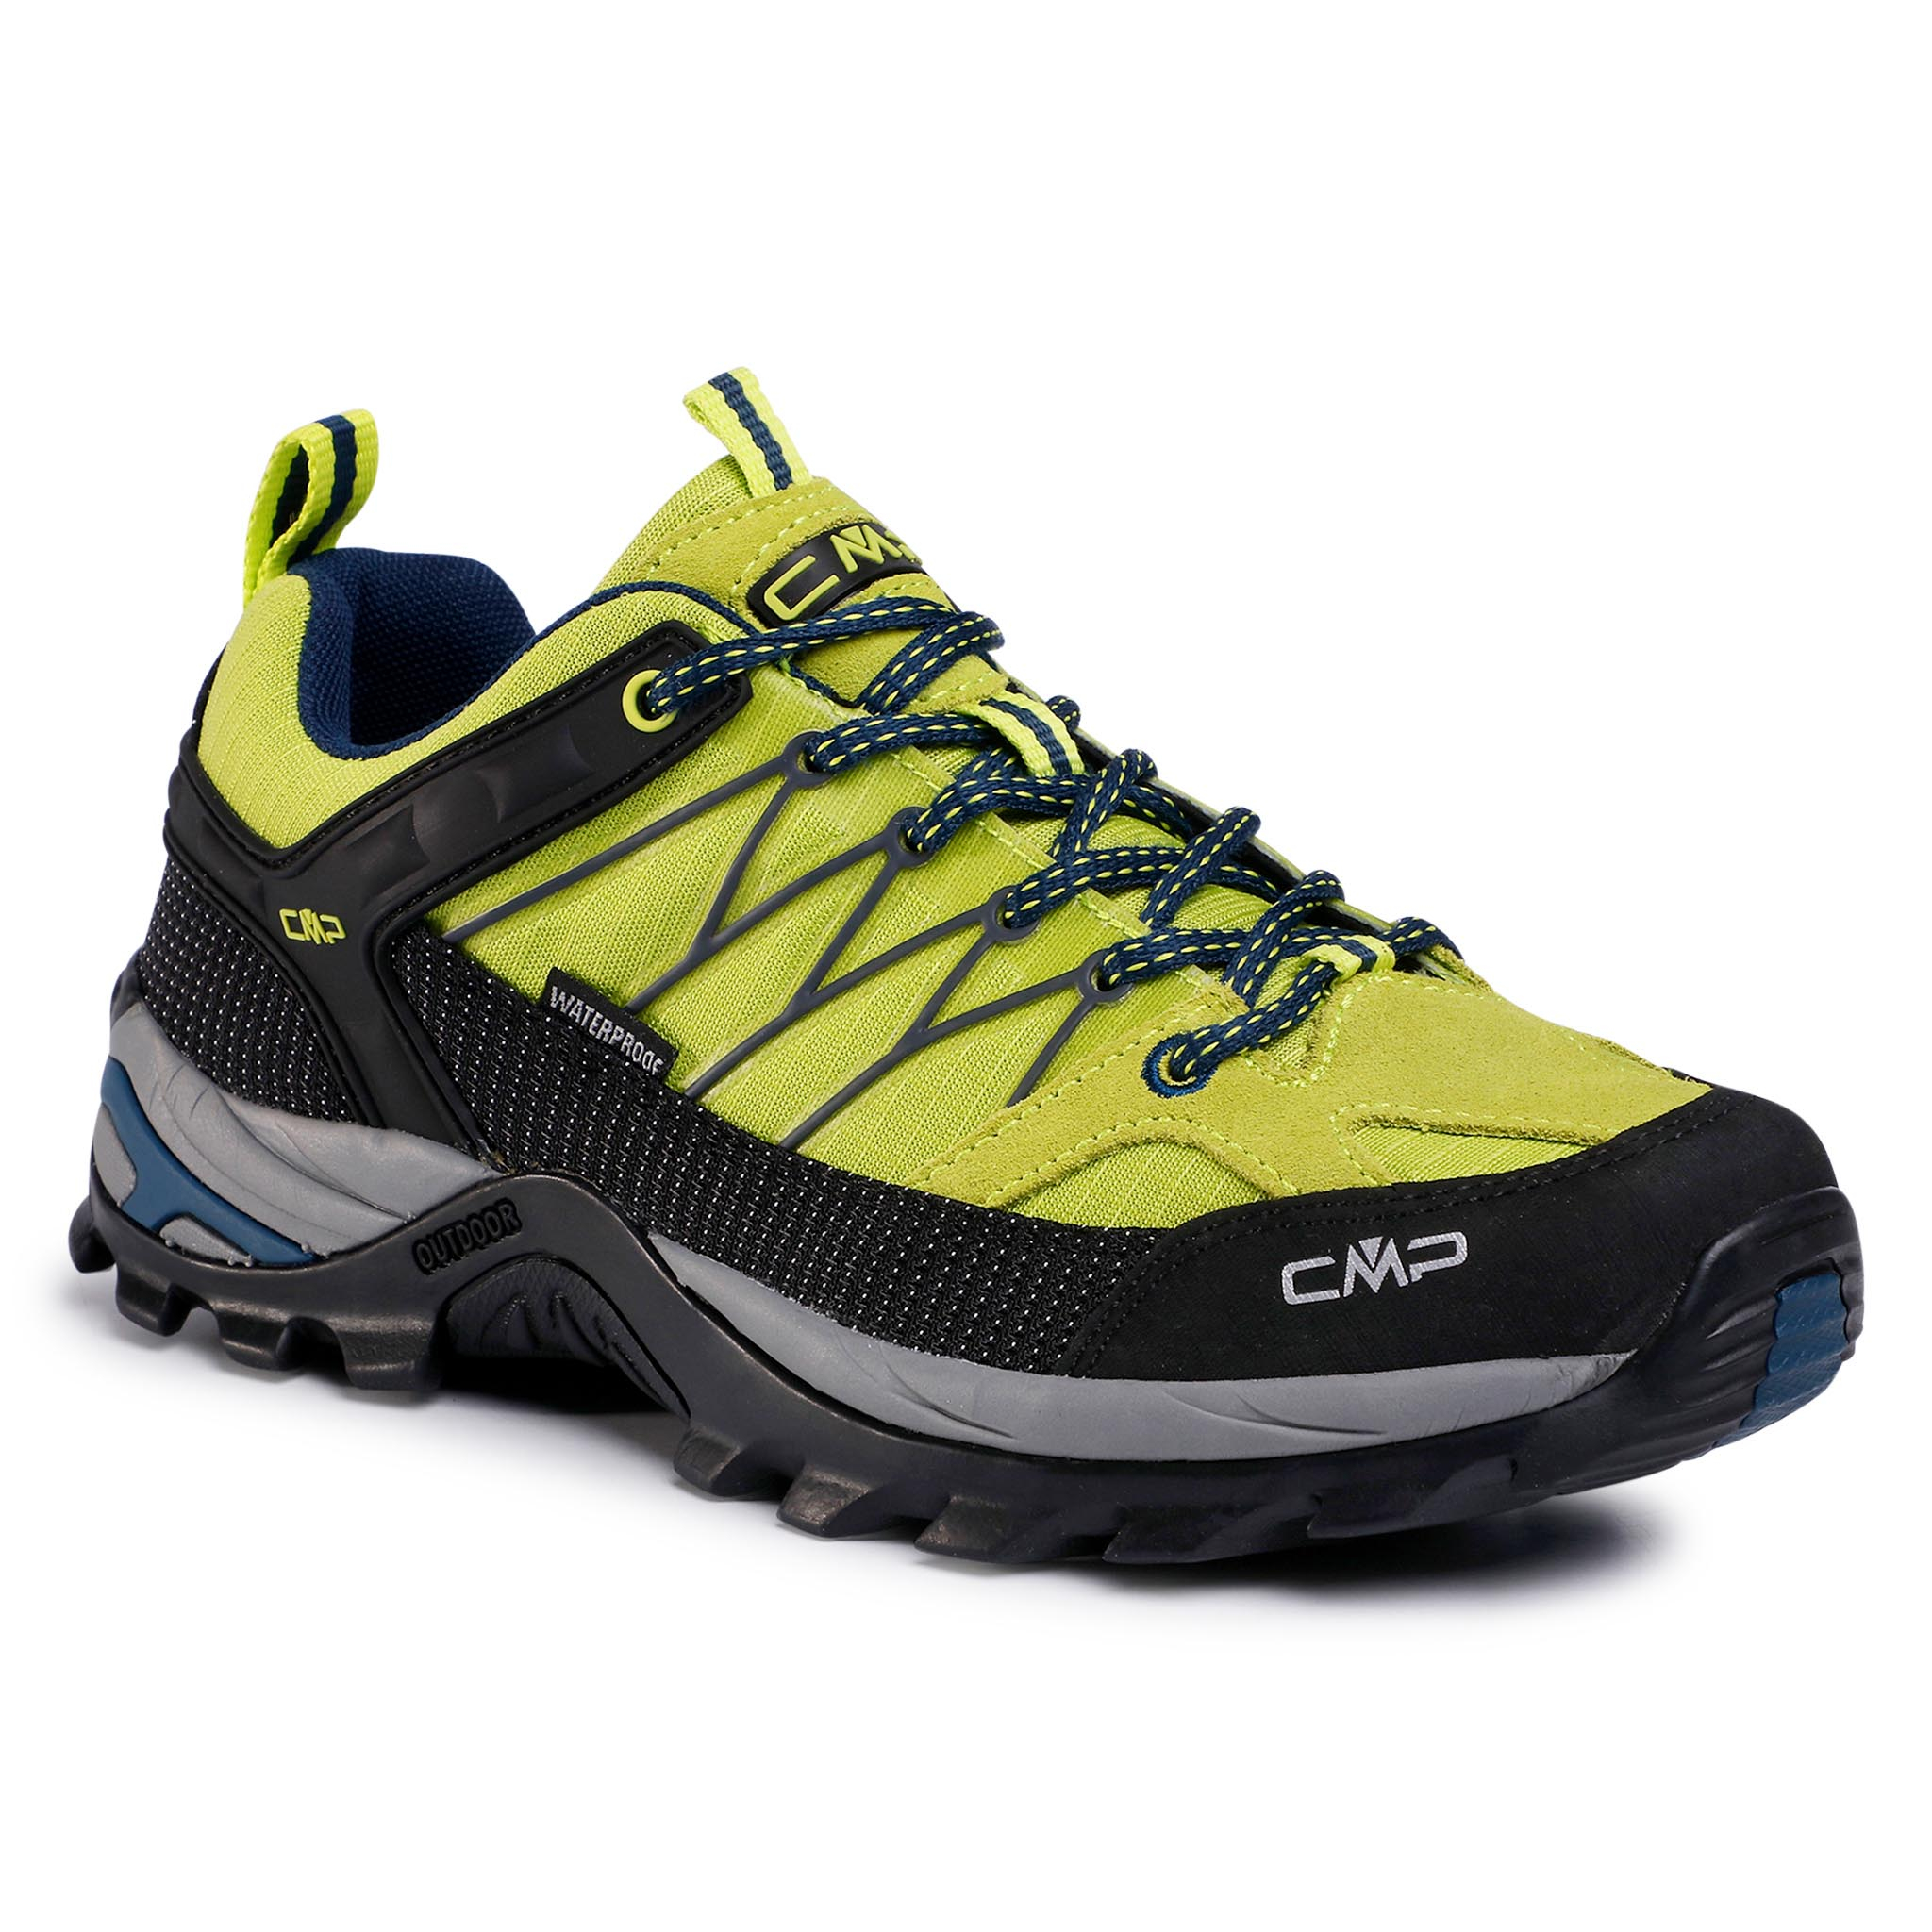 Trekkings Cmp - Rigel Low Trekking Shoes Wp 3q54457 Energy/Cosmo 29ee imagine epantofi.ro 2021